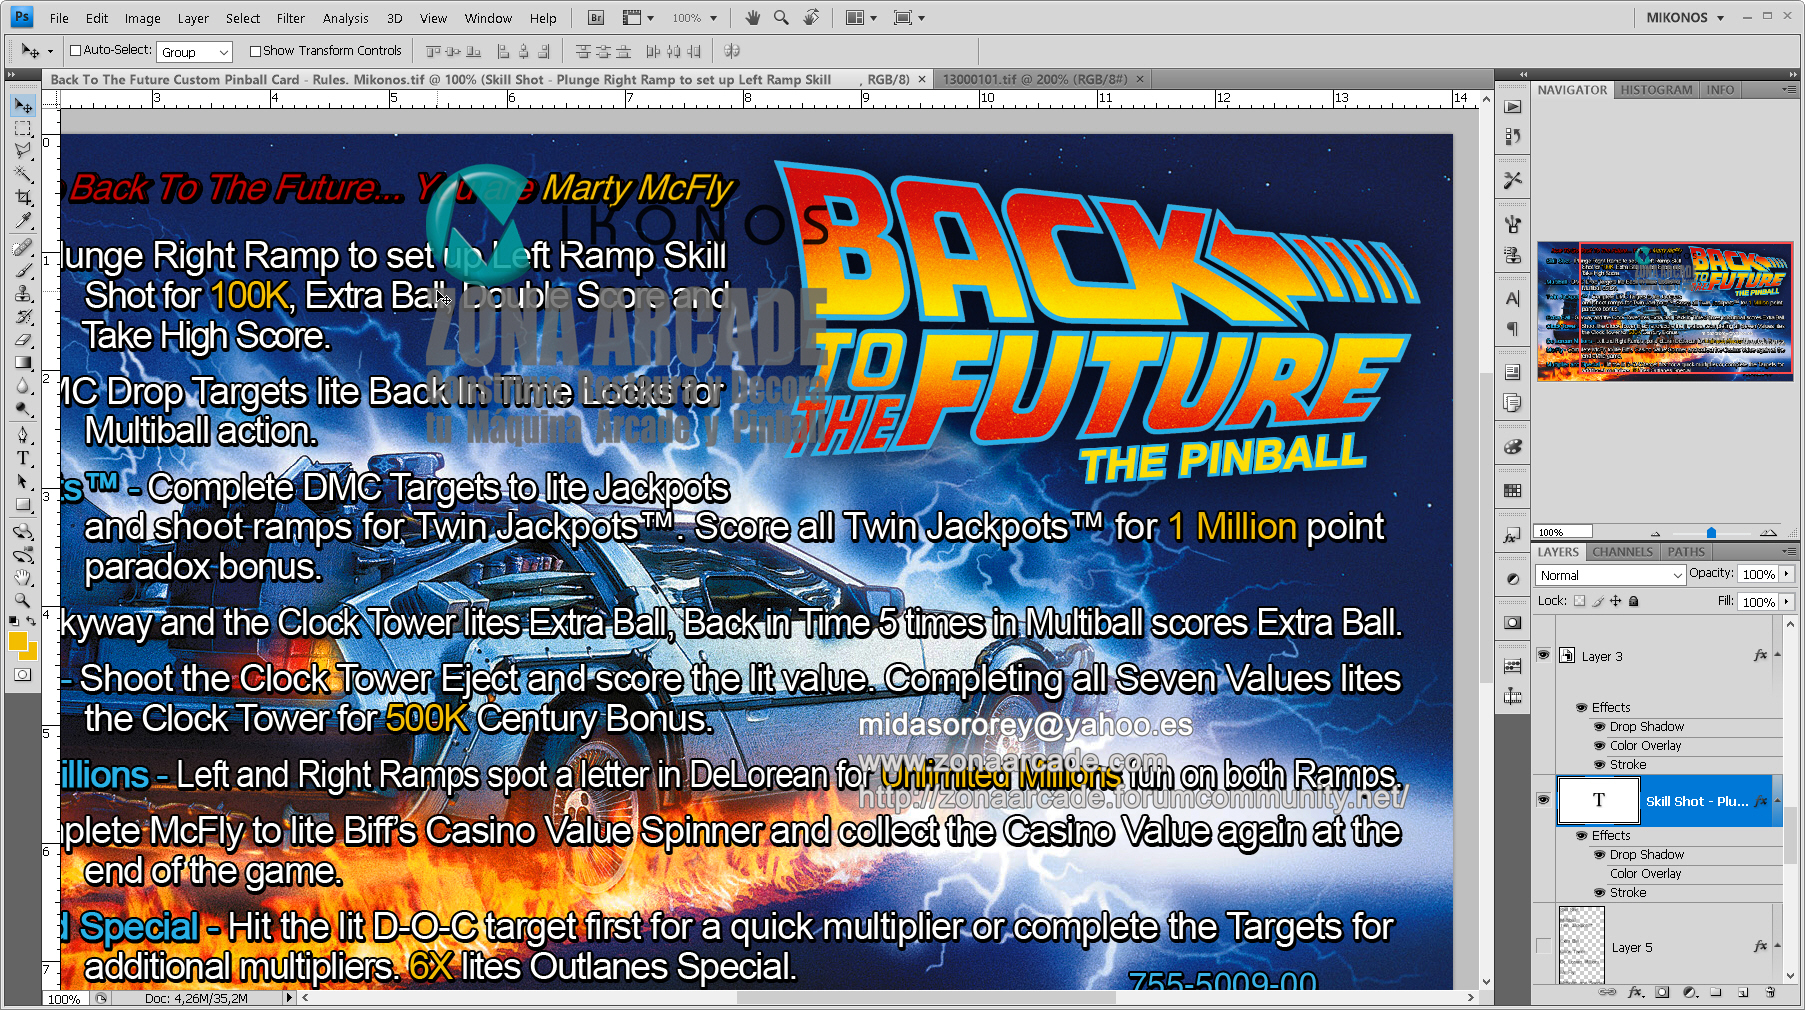 Back%20To%20The%20Future%20Custom%20Pinball%20Card%20-%20Rules.%20Mikonos2.jpg